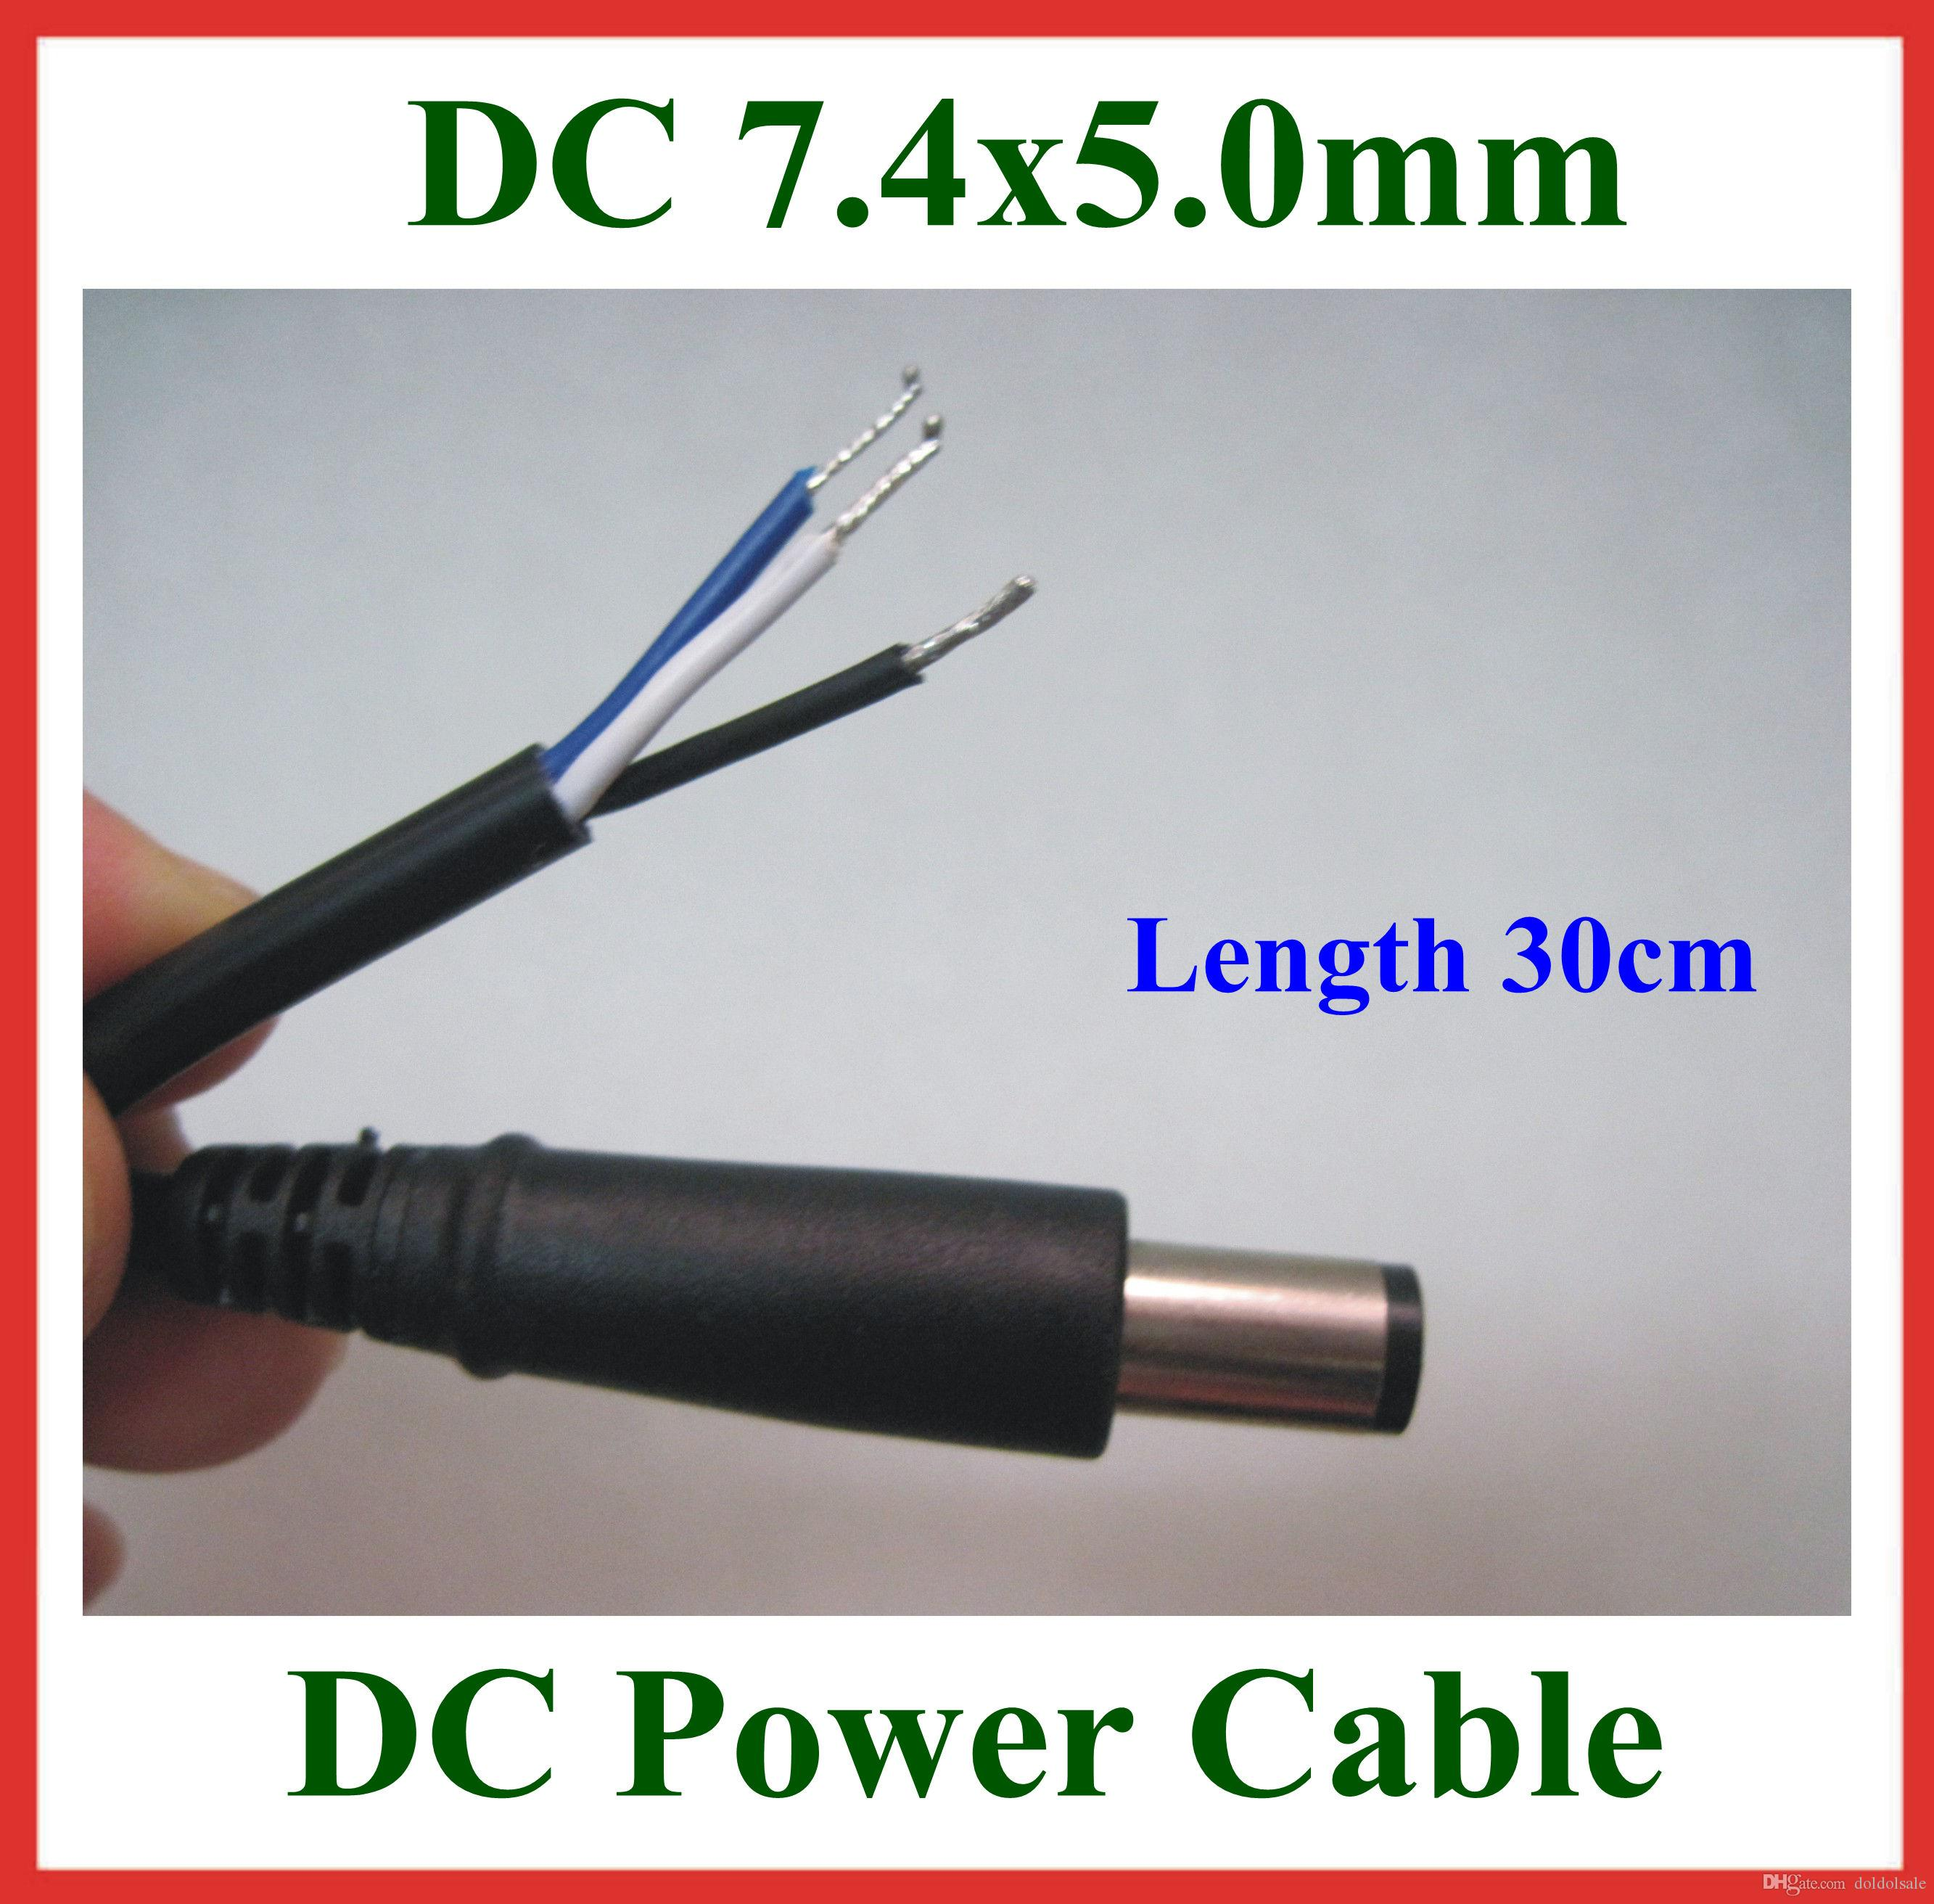 2pcs dc tip plug 7 4 5 0mm 7 4x5 0mm dc power dc tip plug 7 4*5 0mm 7 4x5 0mm dc power supply cable with pin wiring diagram for hp laptop charger at cos-gaming.co